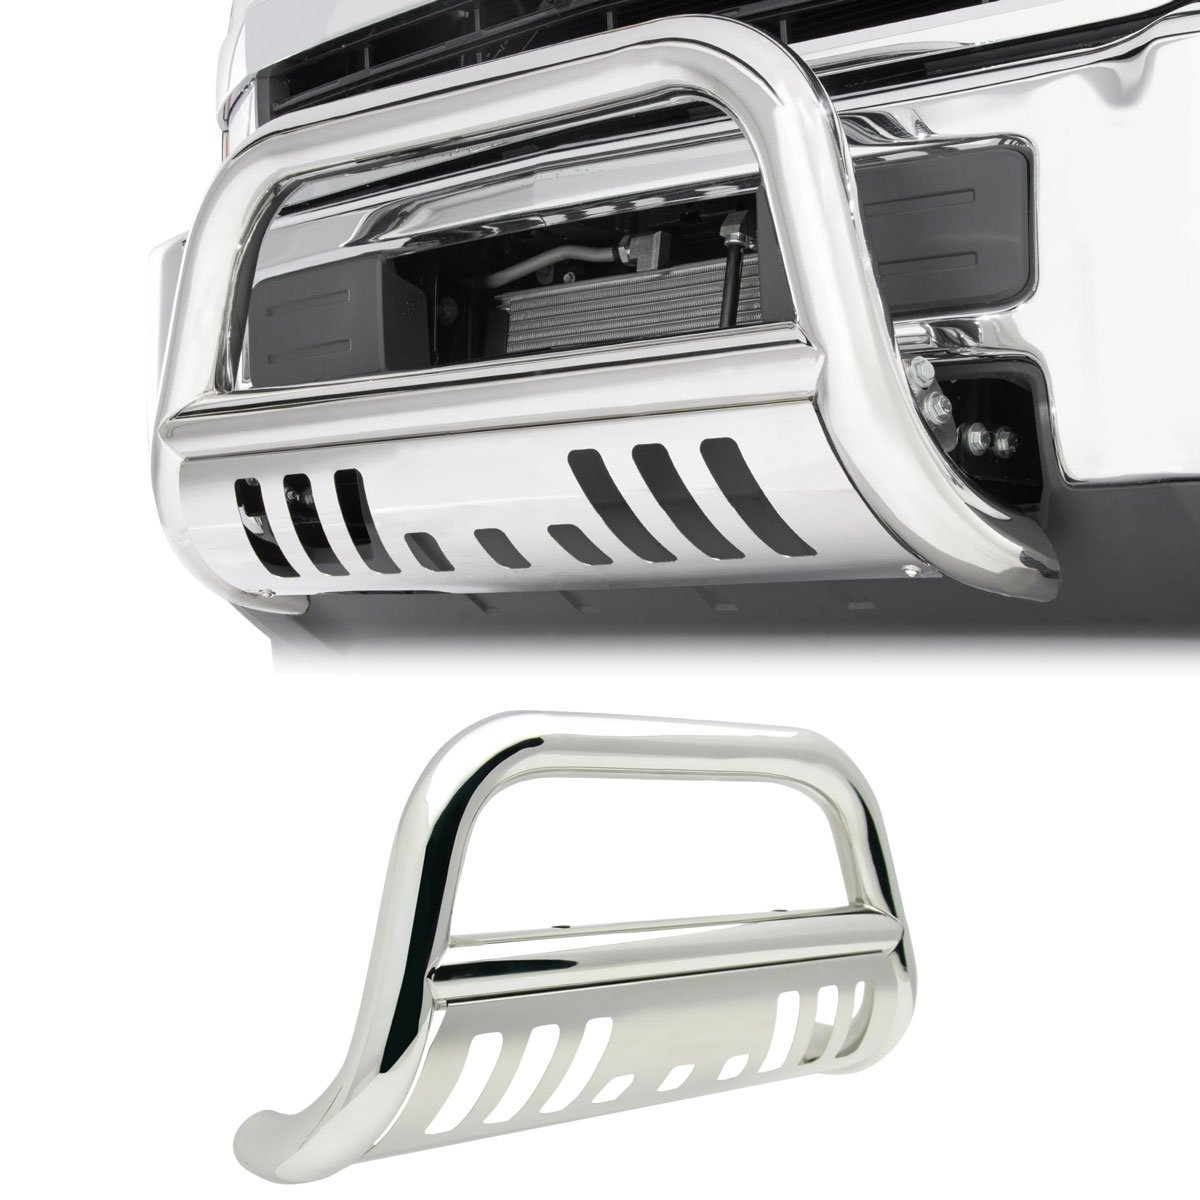 4X4TAG Premium Quality Mirror Polish Stainless Steel Bull Bar Fits Chevy//GMC Trailblazer//Envoy 2002-2009 Bumper Grille Guard with Skid Plate and Optional Light Holes